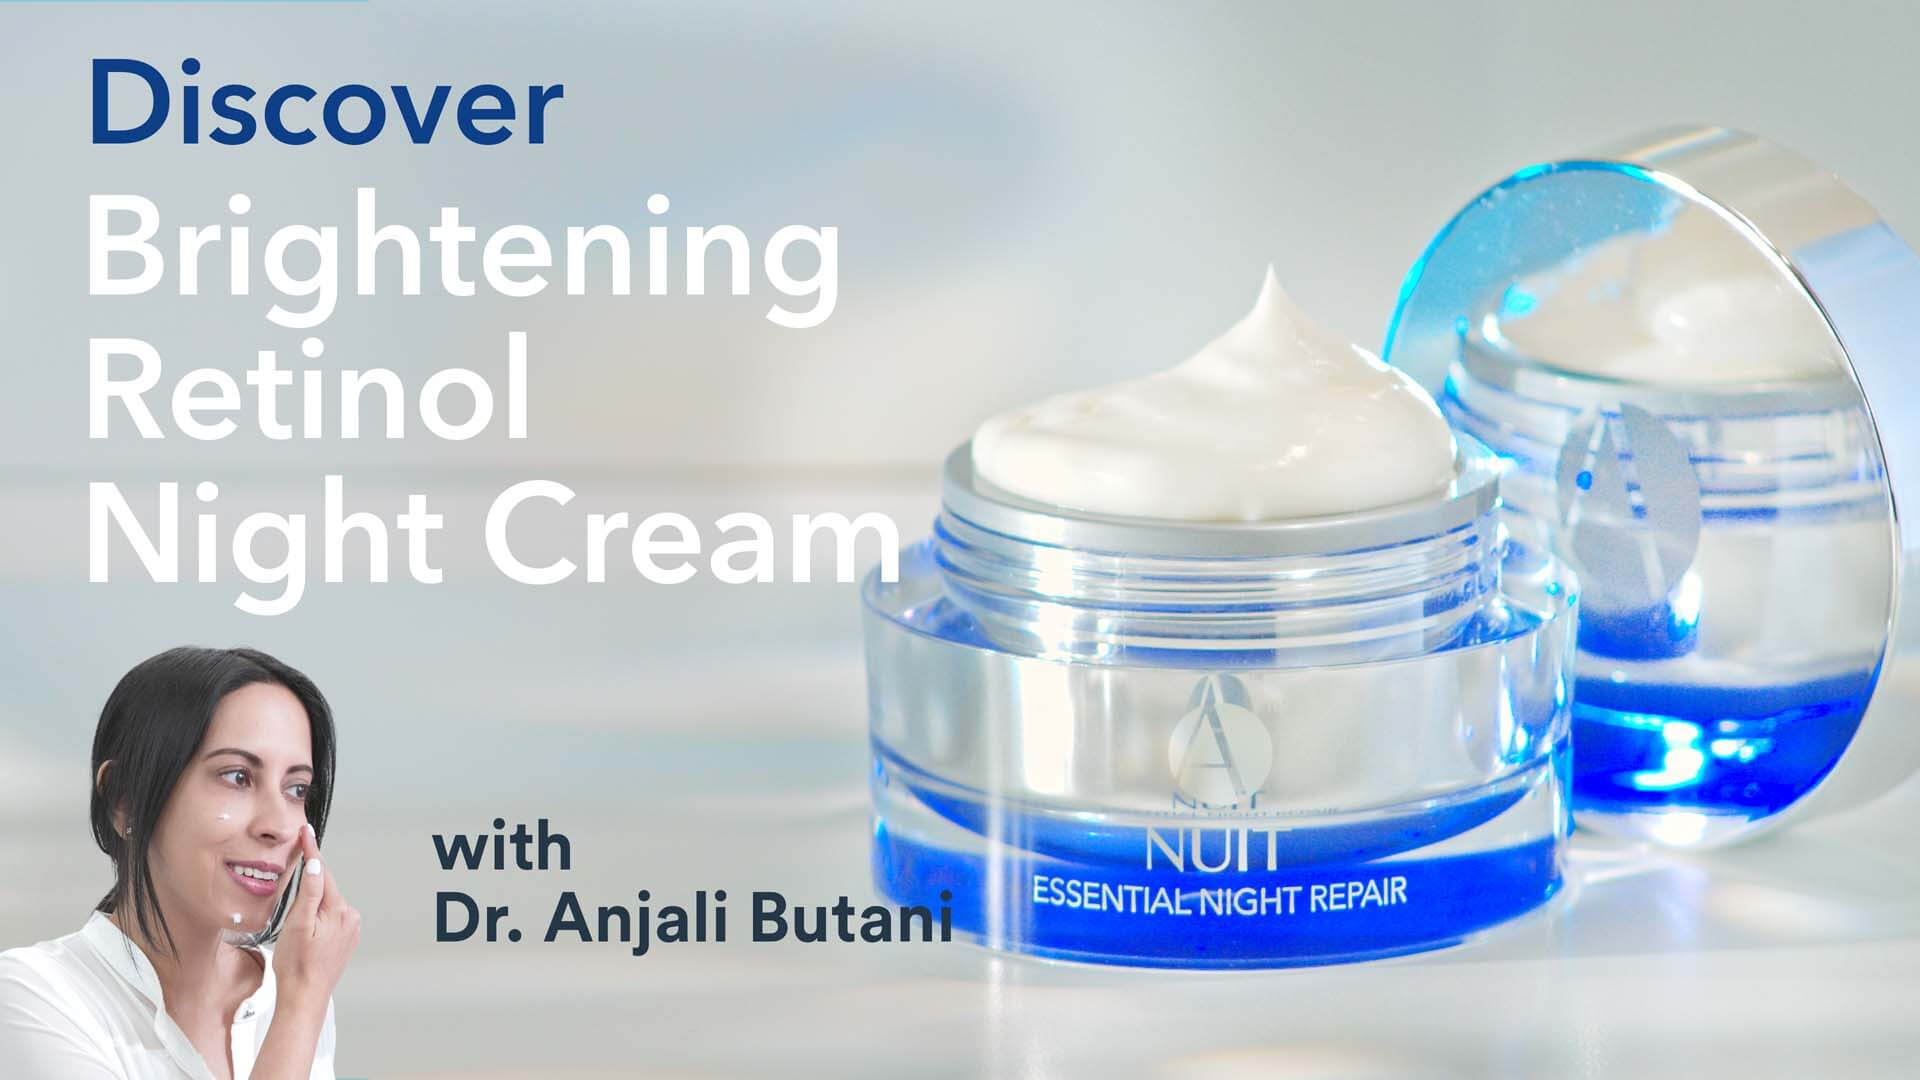 Brightening Retinol Night Cream Discover Video